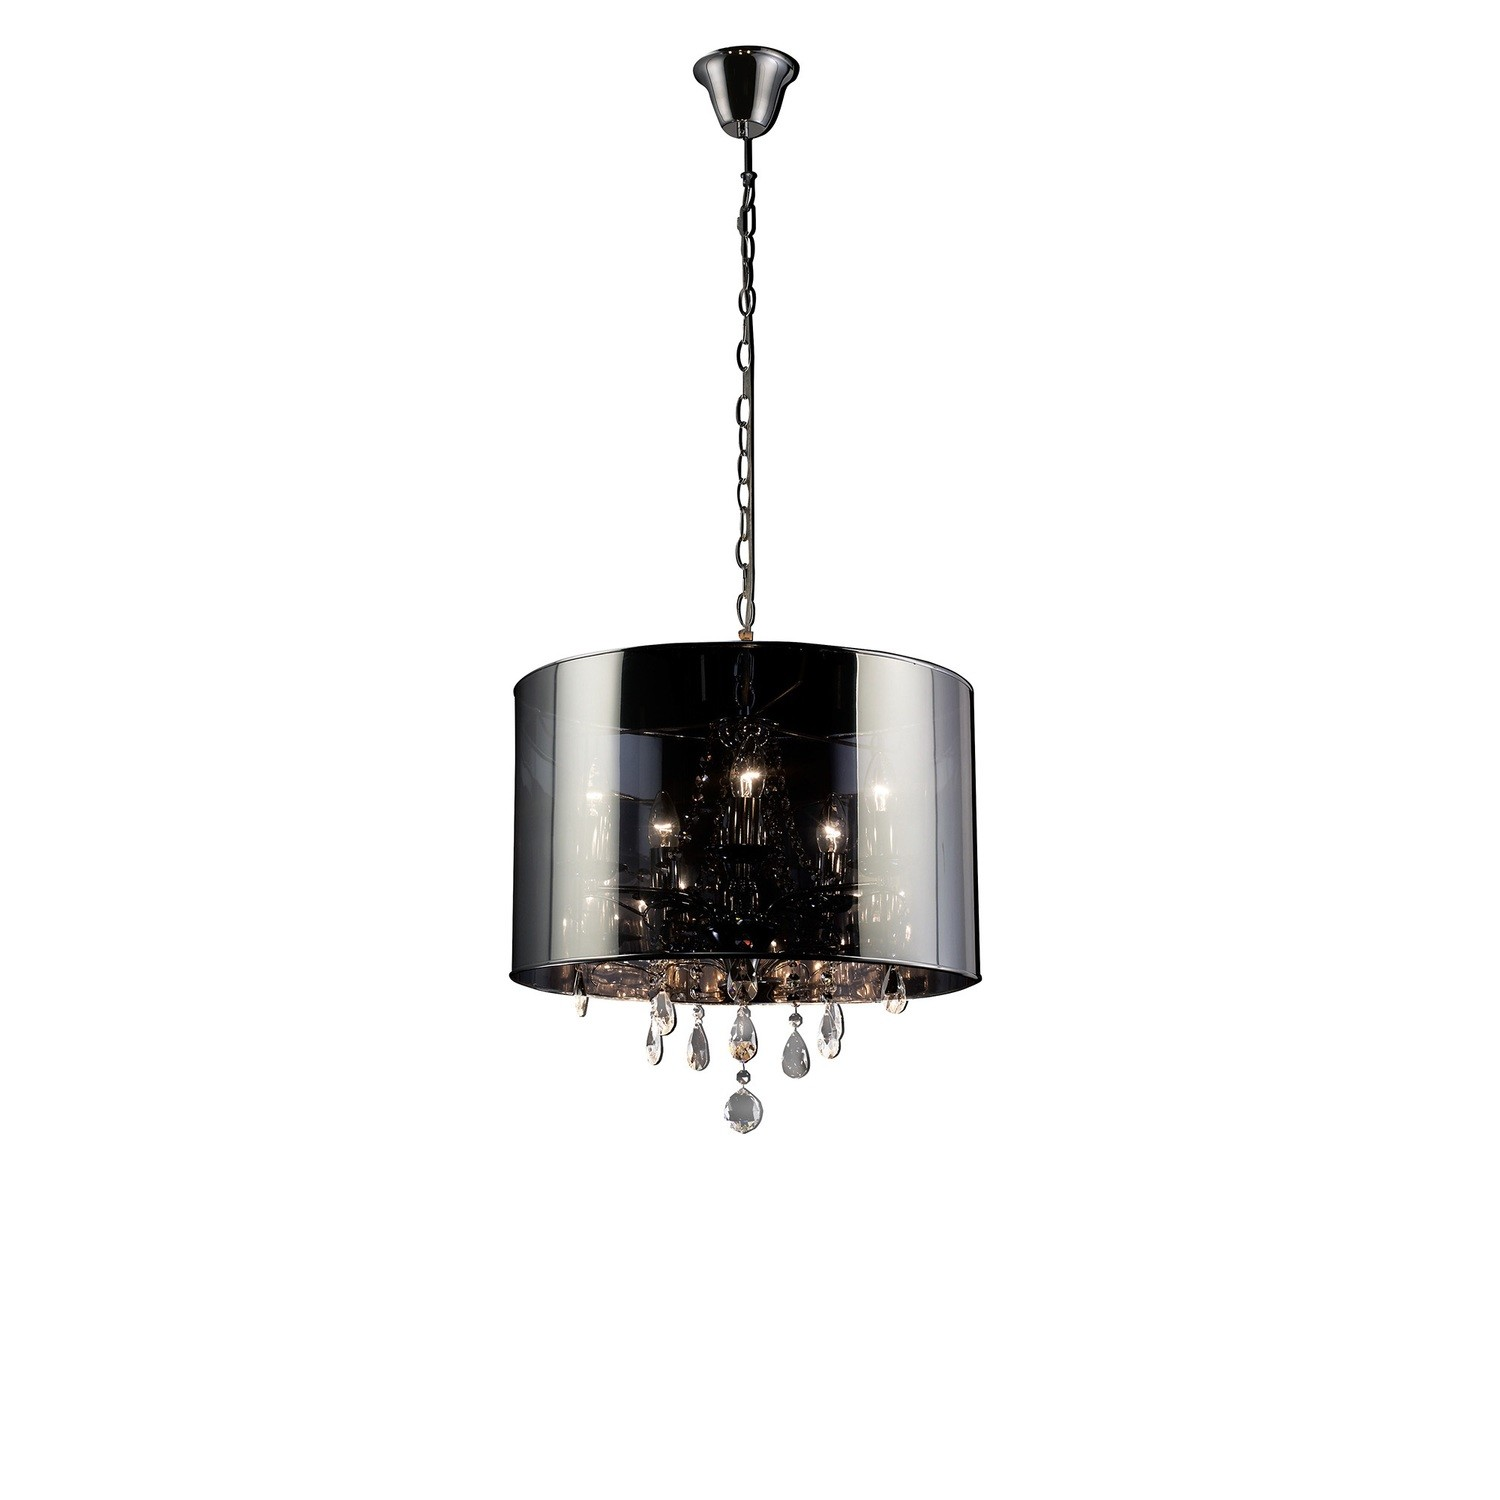 Trace Pendant With Chrome Shade 5 Light E14 Polished Chrome/PVC /Crystal